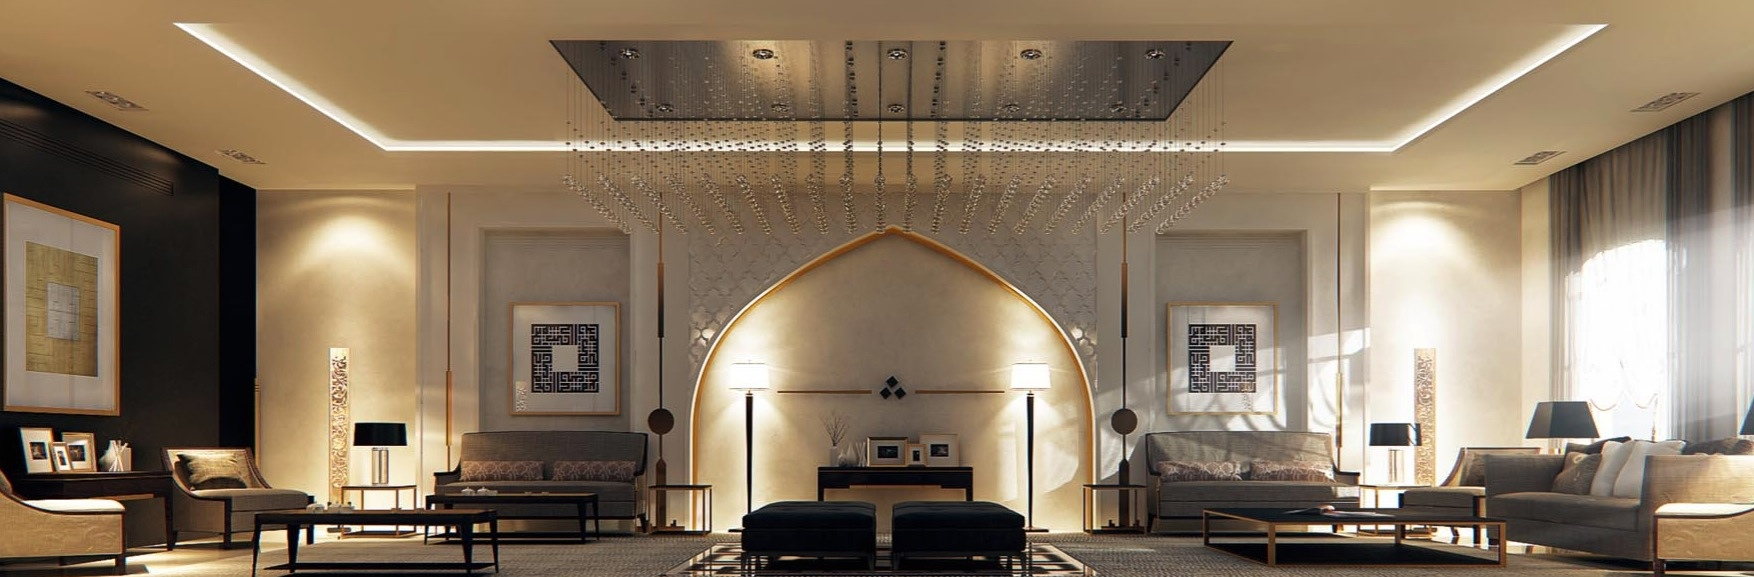 Modern moroccan interior design ideas Moroccan interior design